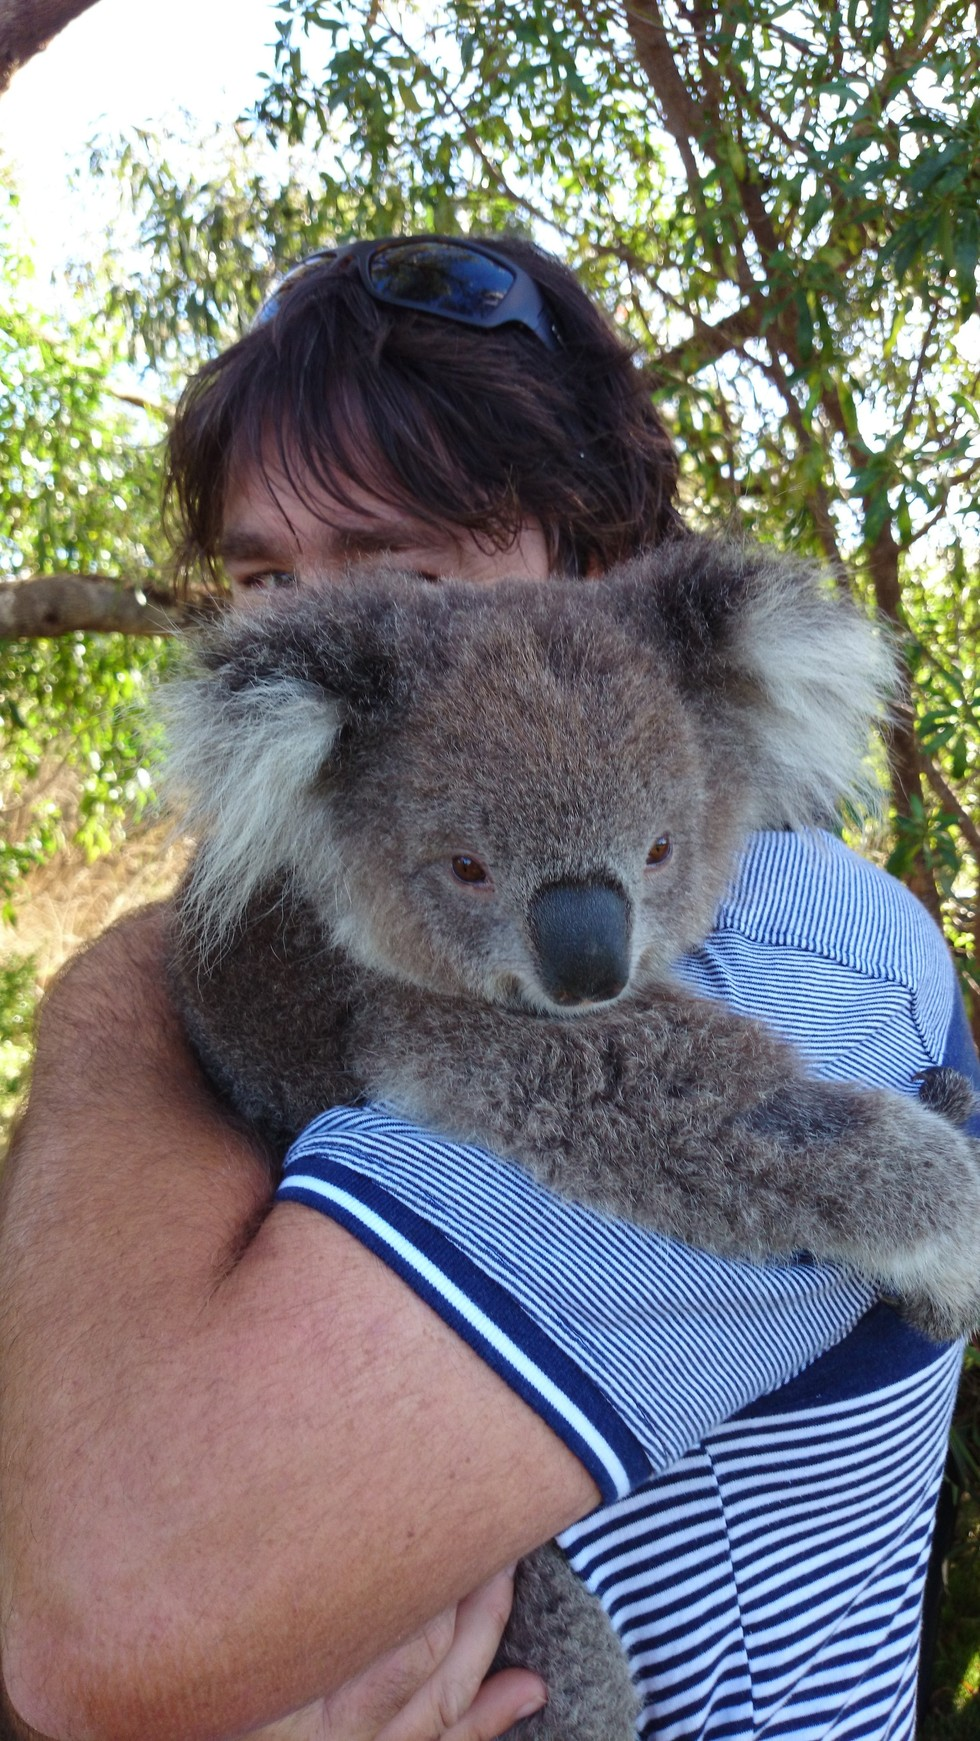 RAYMOND ISLAND KOALA AND WILDLIFE SHELTER